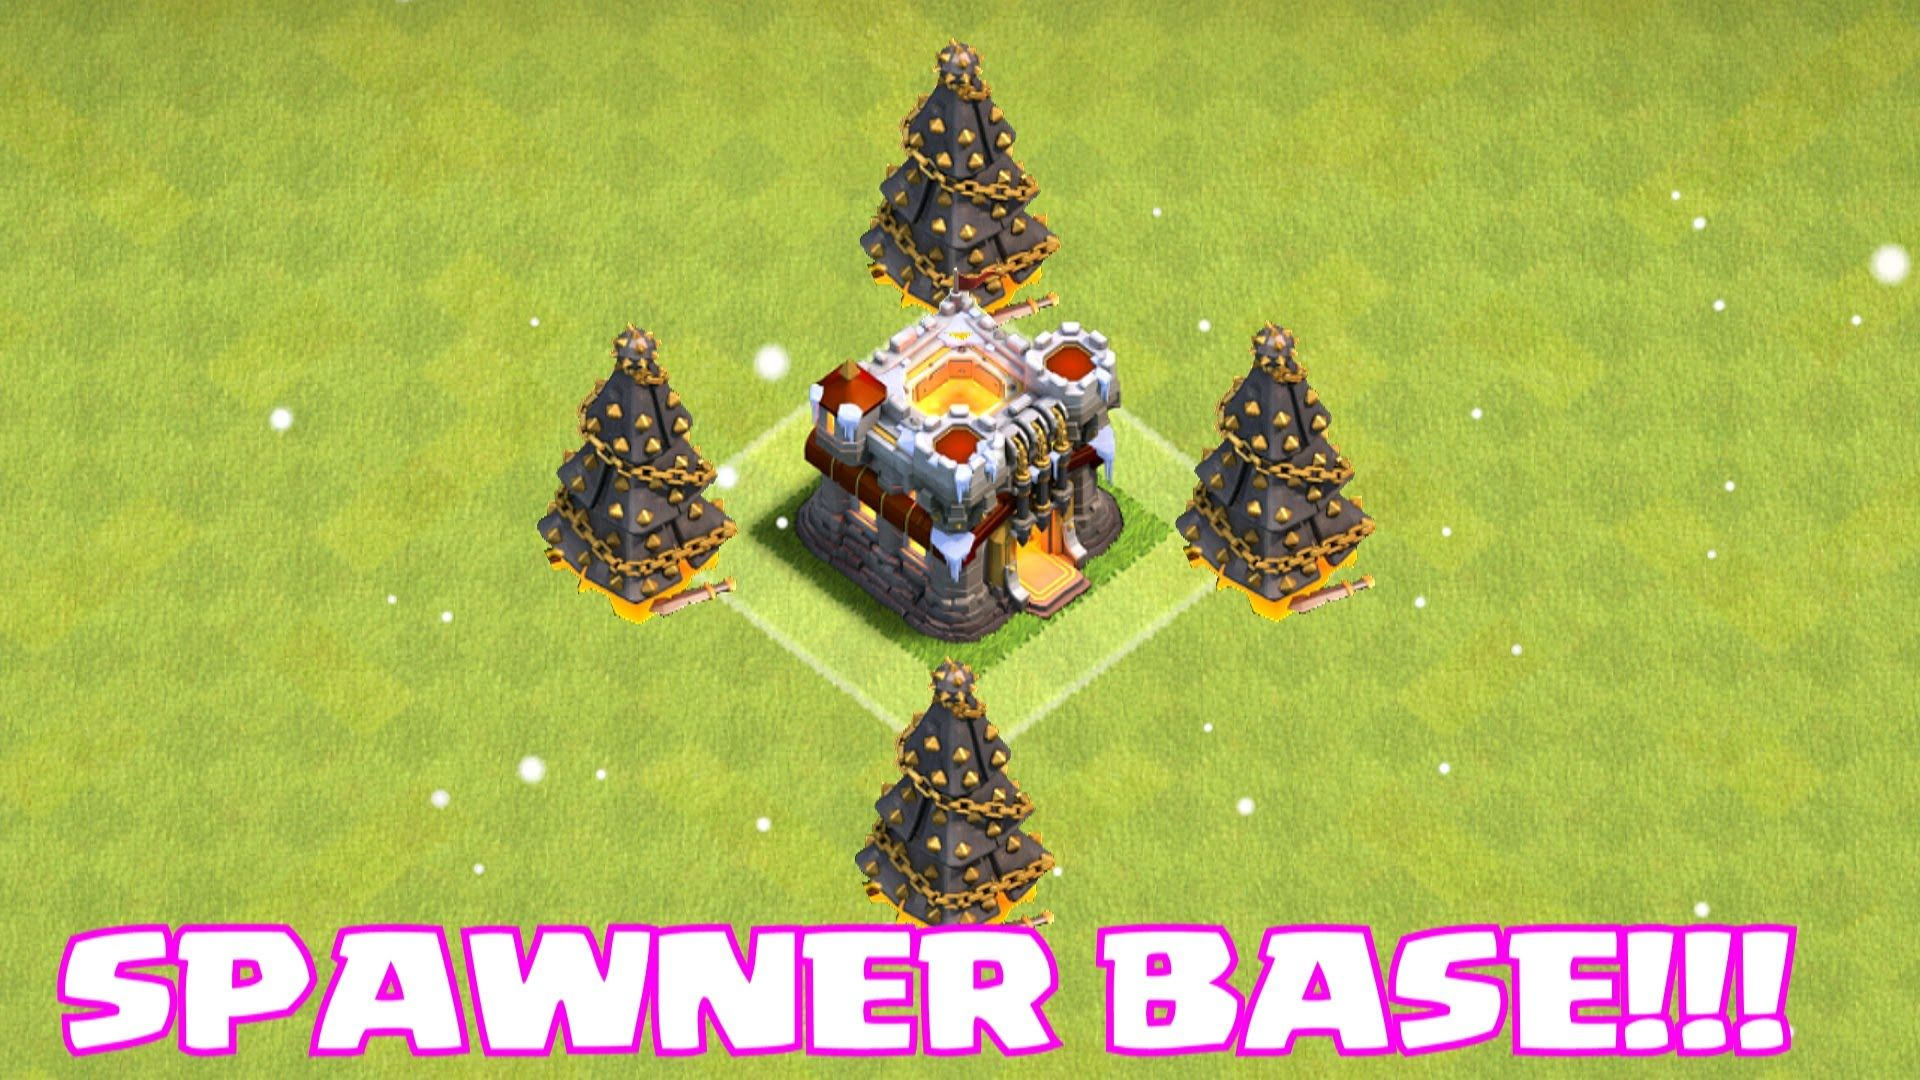 Clash Of Clans Christmas Trees In Order.Pin By Ashley Taylor On Your Trusted Hacks Clash Of Clans